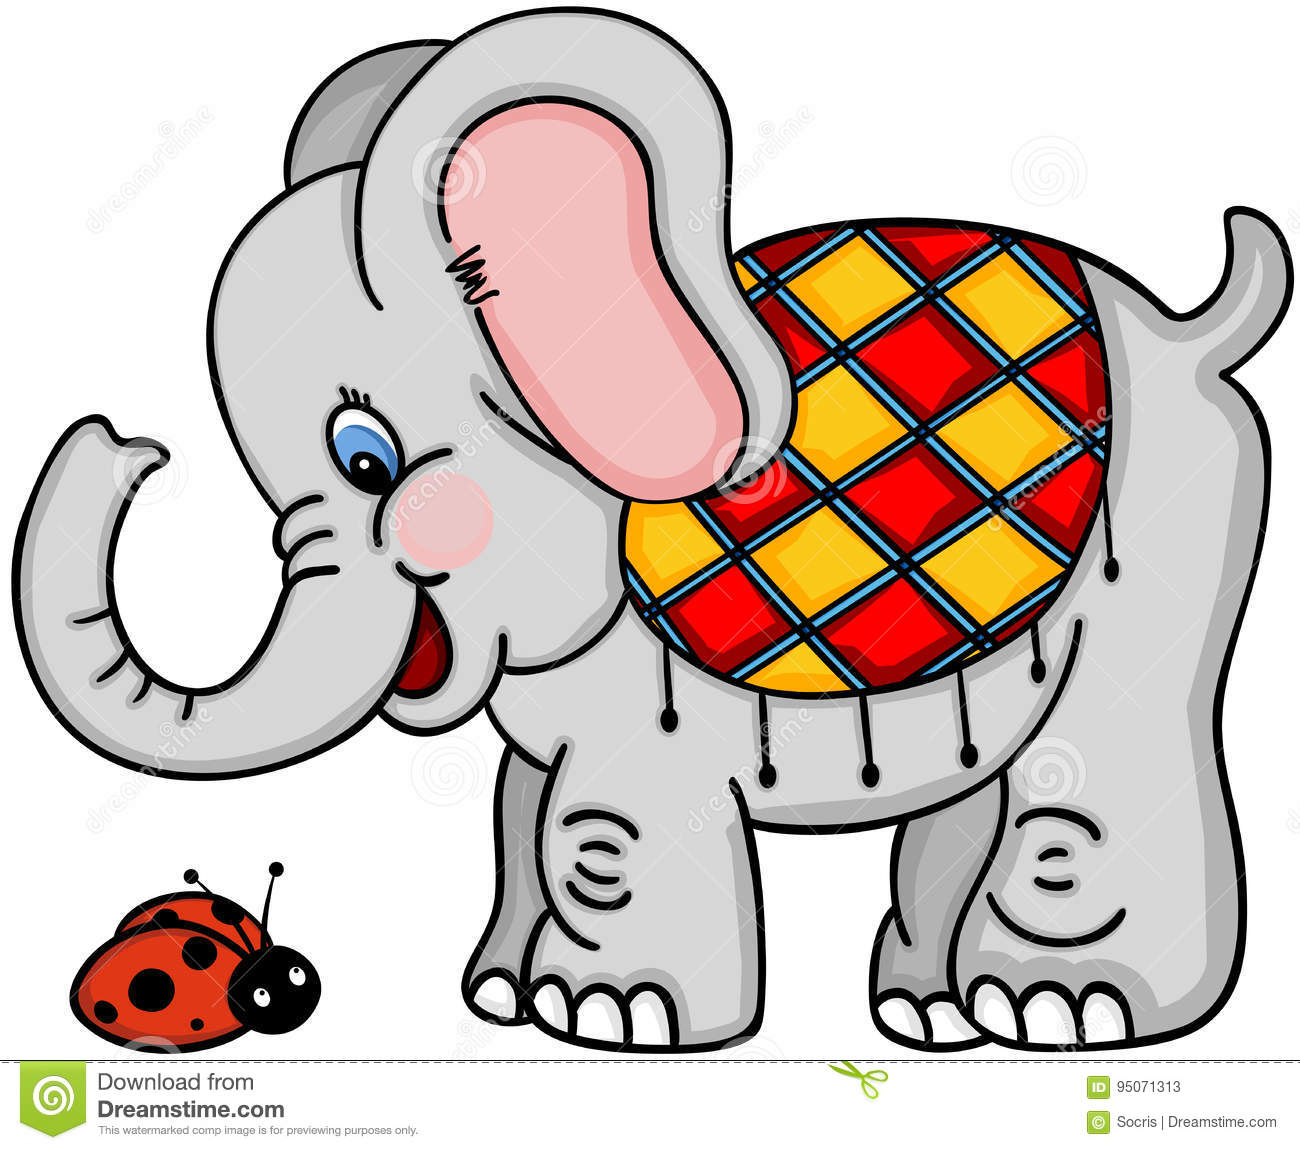 Cute elephant and ladybird stock vector. Illustration of drawing ...